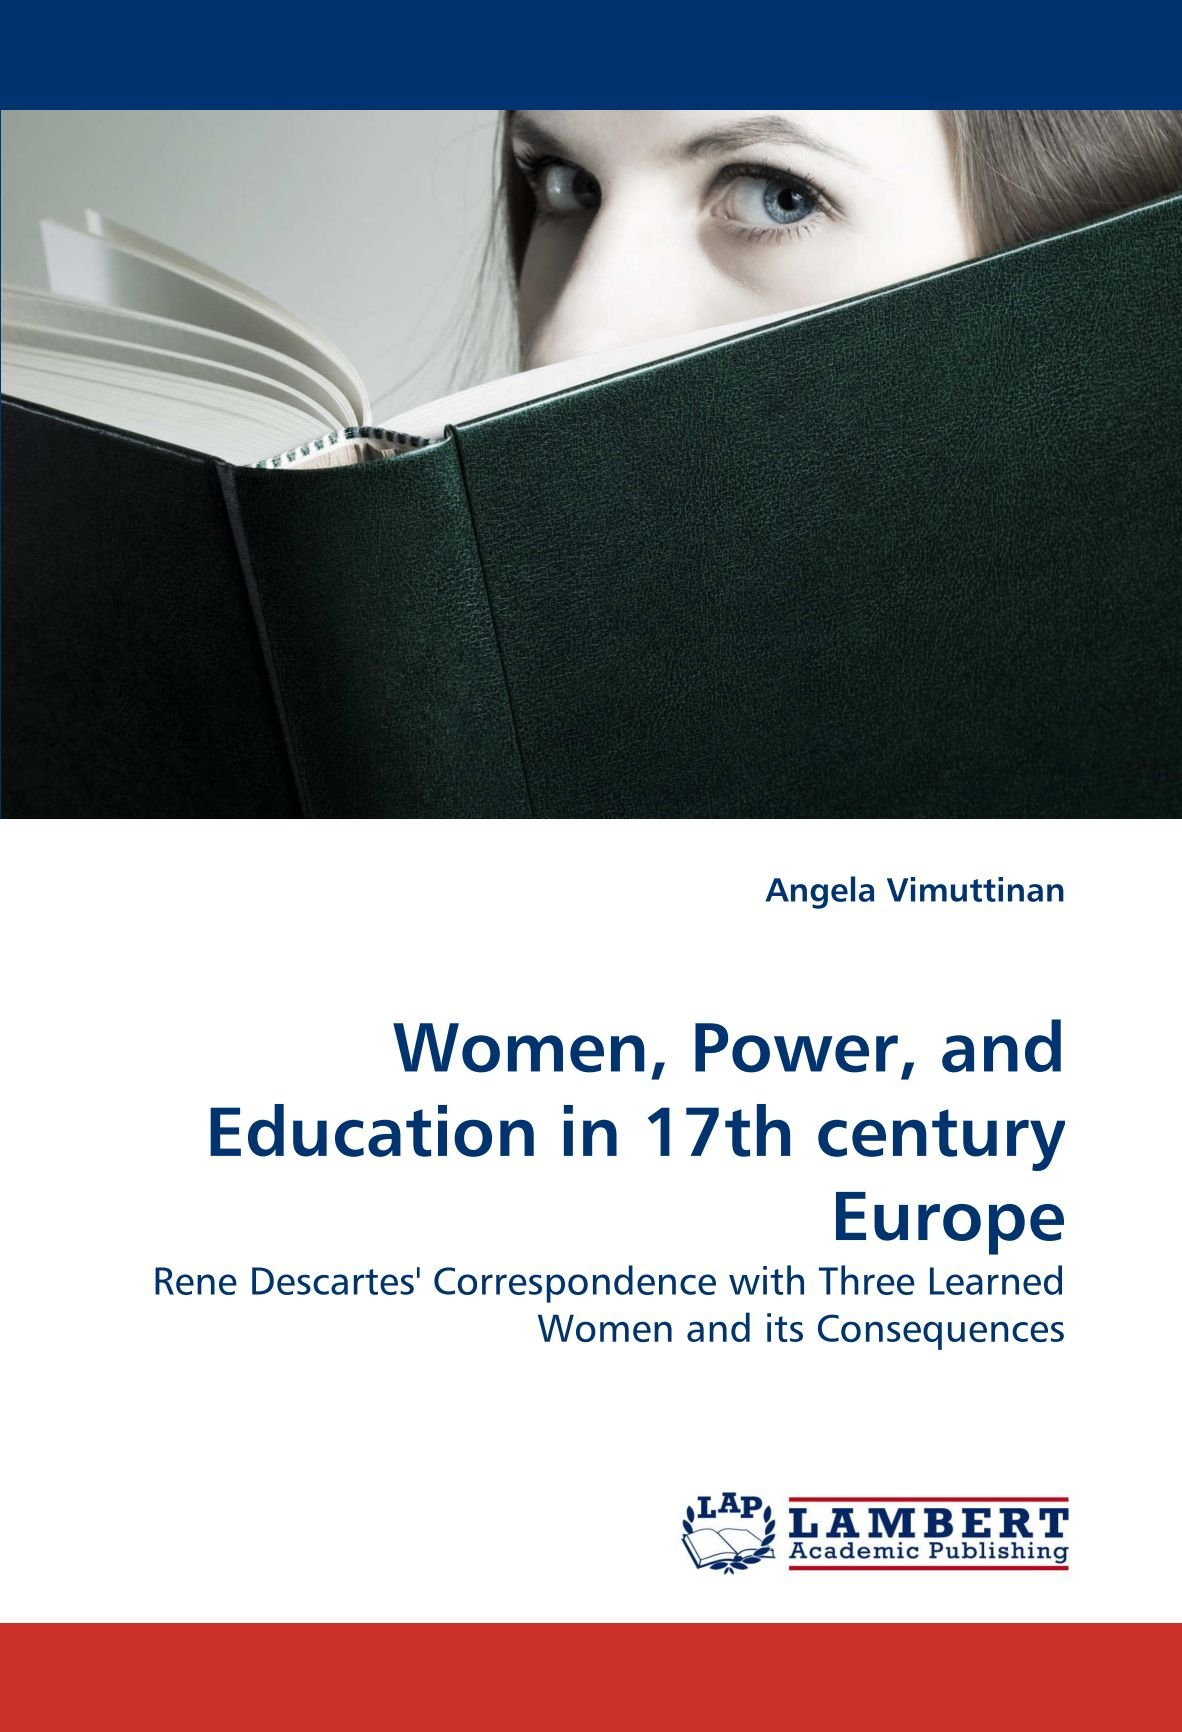 Women, Power, and Education in 17th century Europe: Rene Descartes' Correspondence with Three Learned Women and its Consequences pdf